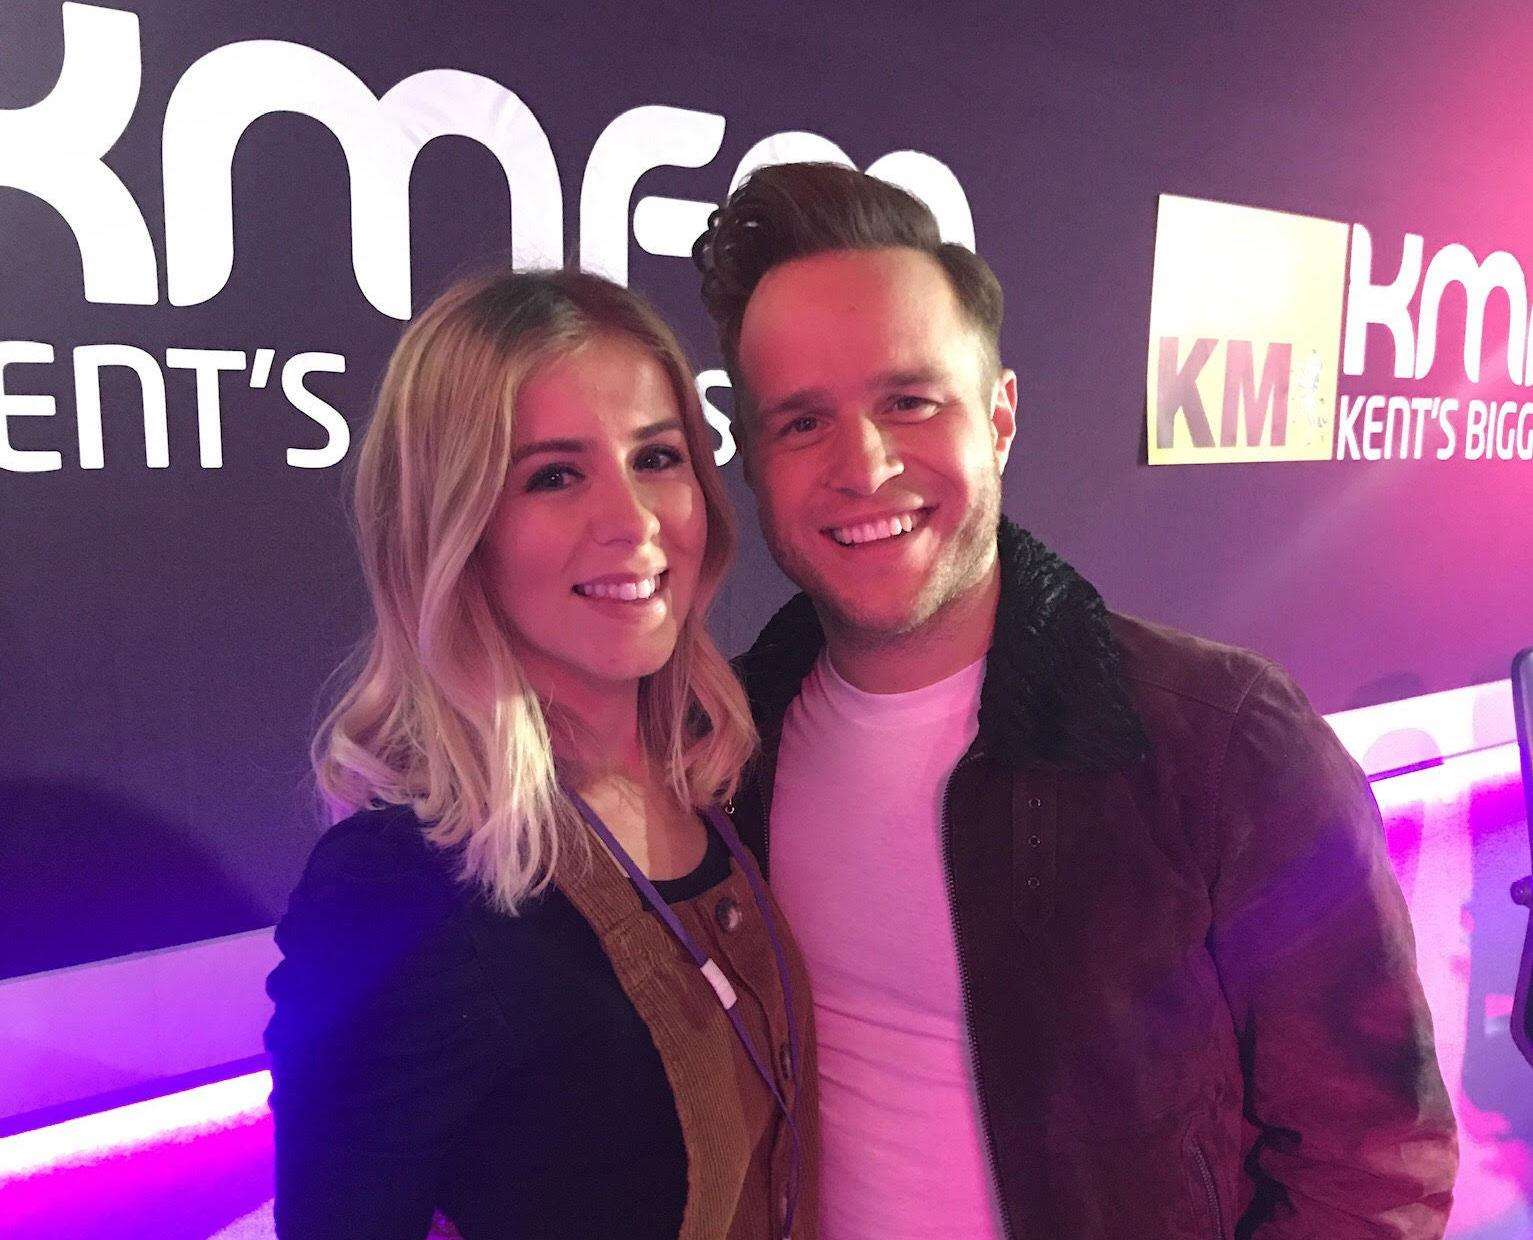 Olly Murs met kmfm Breakfast's Laura Crockett